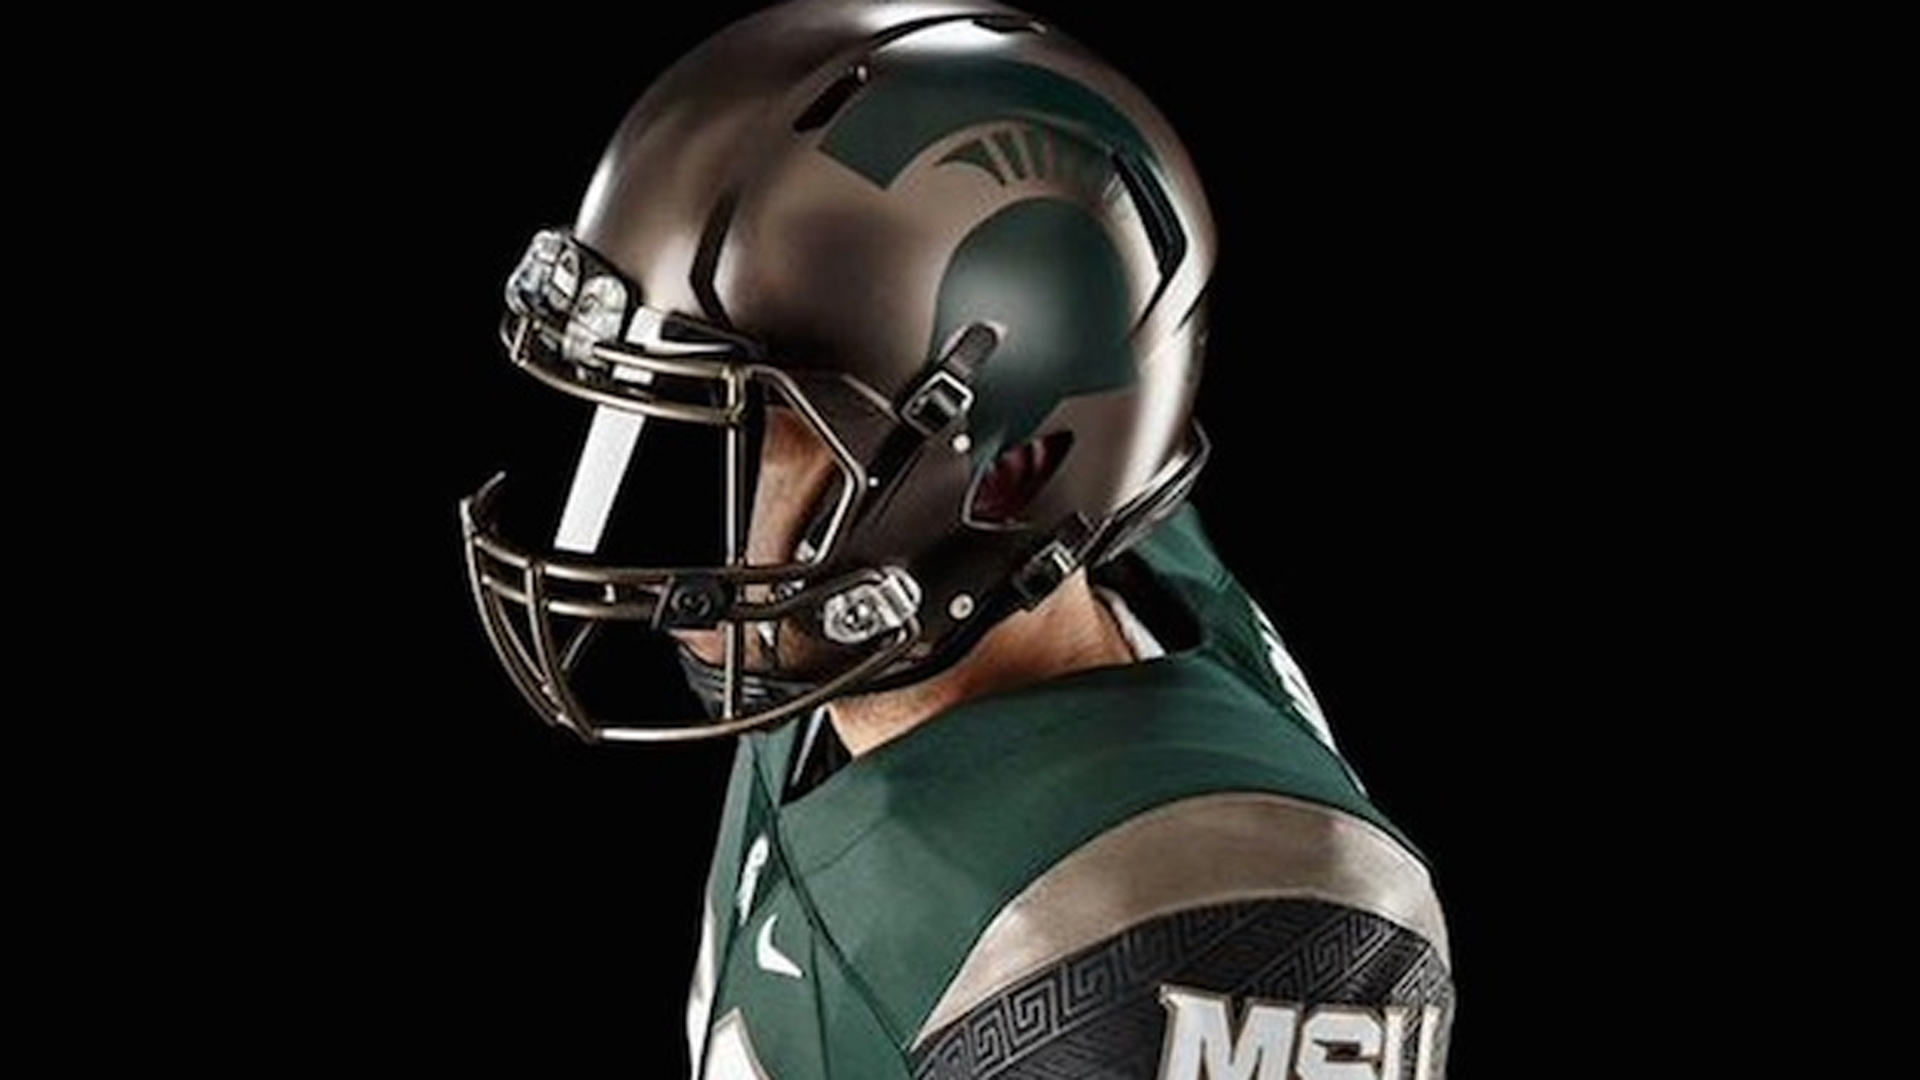 MICHIGAN STATE SPARTAN ATHLETICS</a><br> by <a href='/profile/Bling-King/'>Bling King</a>